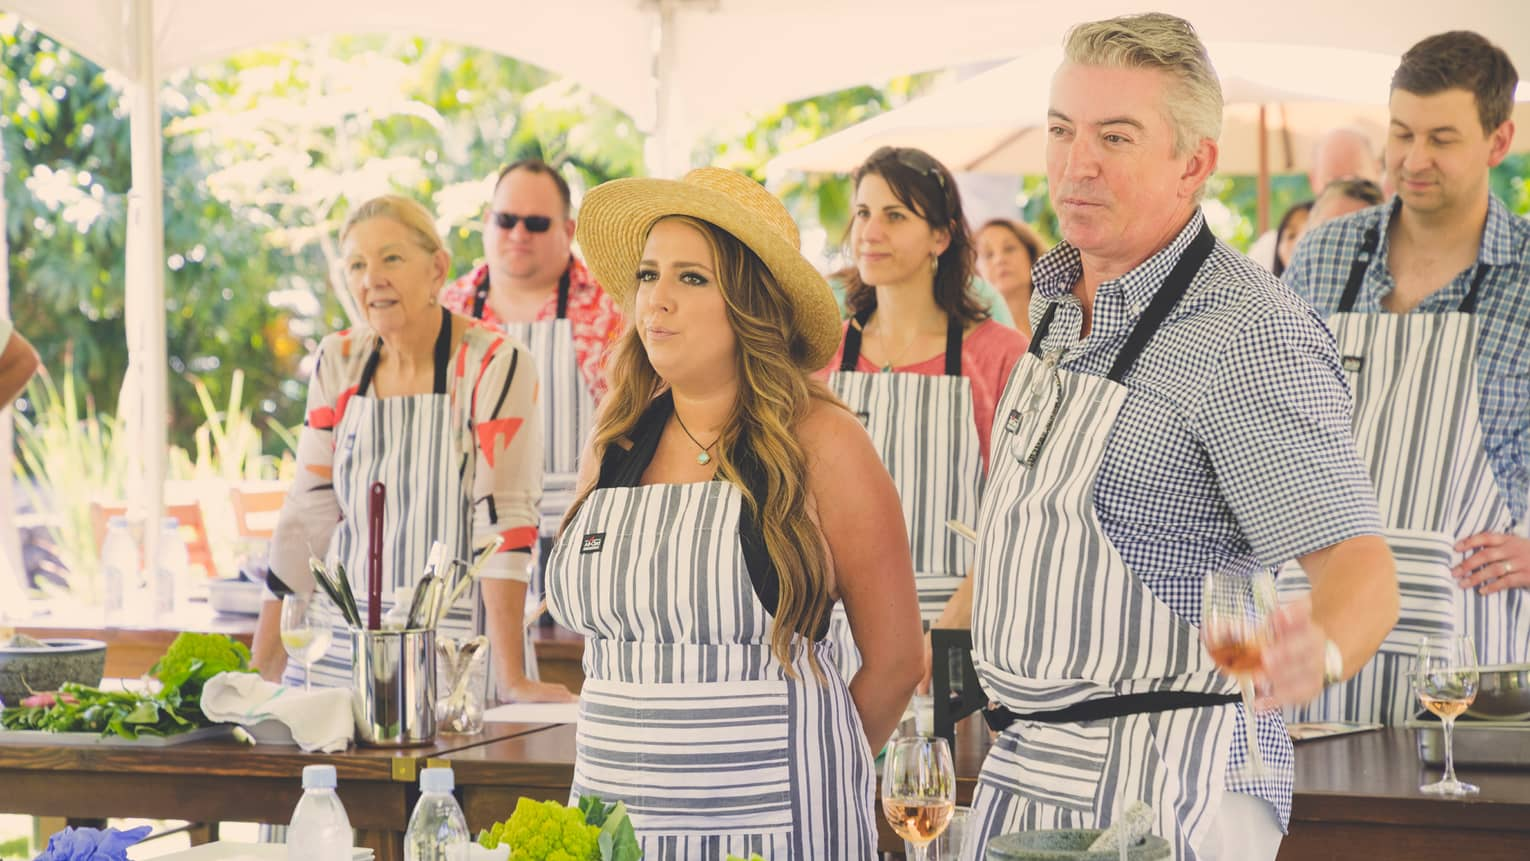 People wearing striped aprons stand at tables with fresh vegetables, cooking class